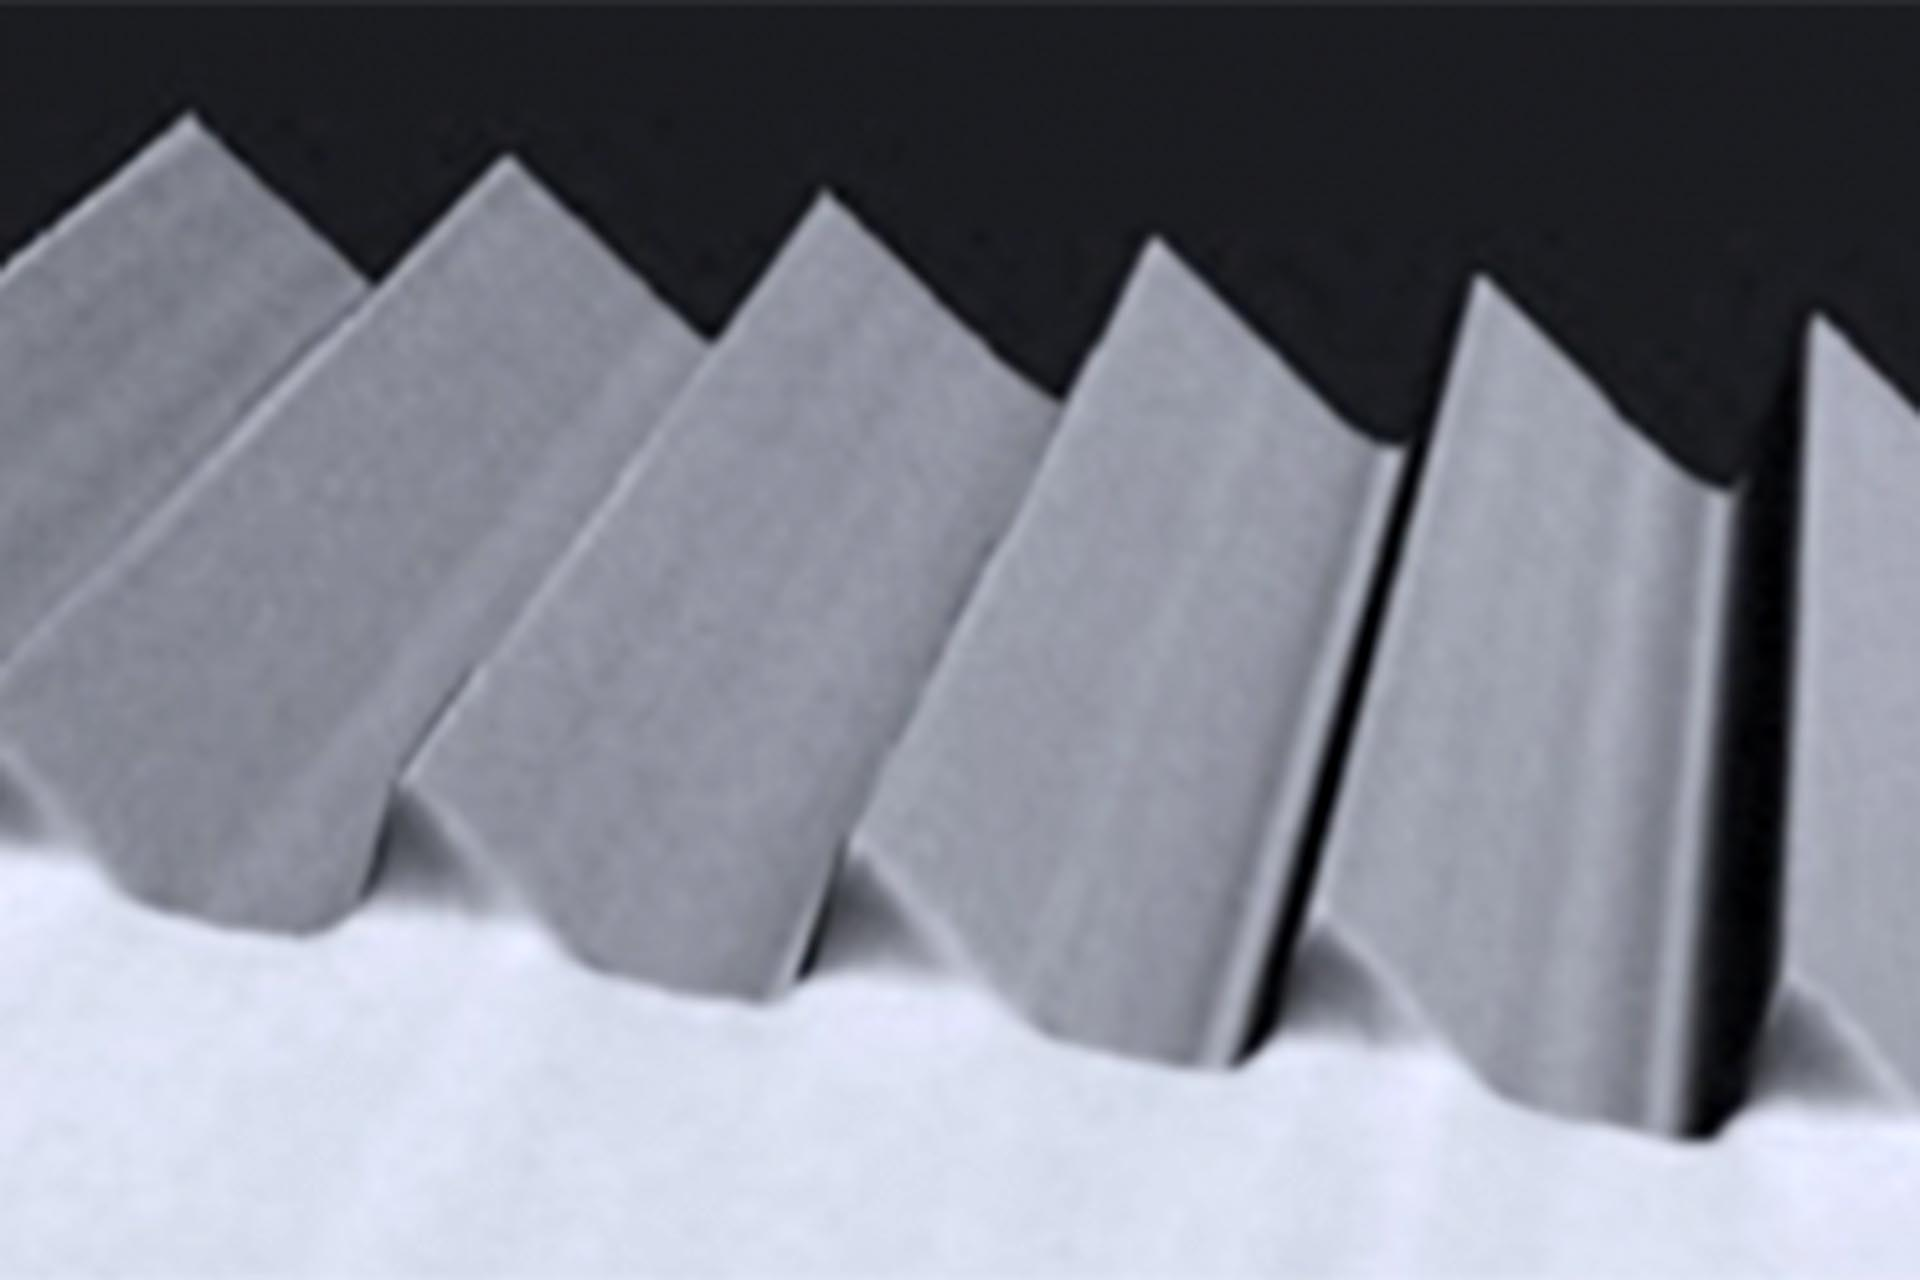 Blazed gratings are key components of many optical instruments, such as monochromators and spectrometers used in sensors, communication systems and other tools. (Courtesy of IGI)